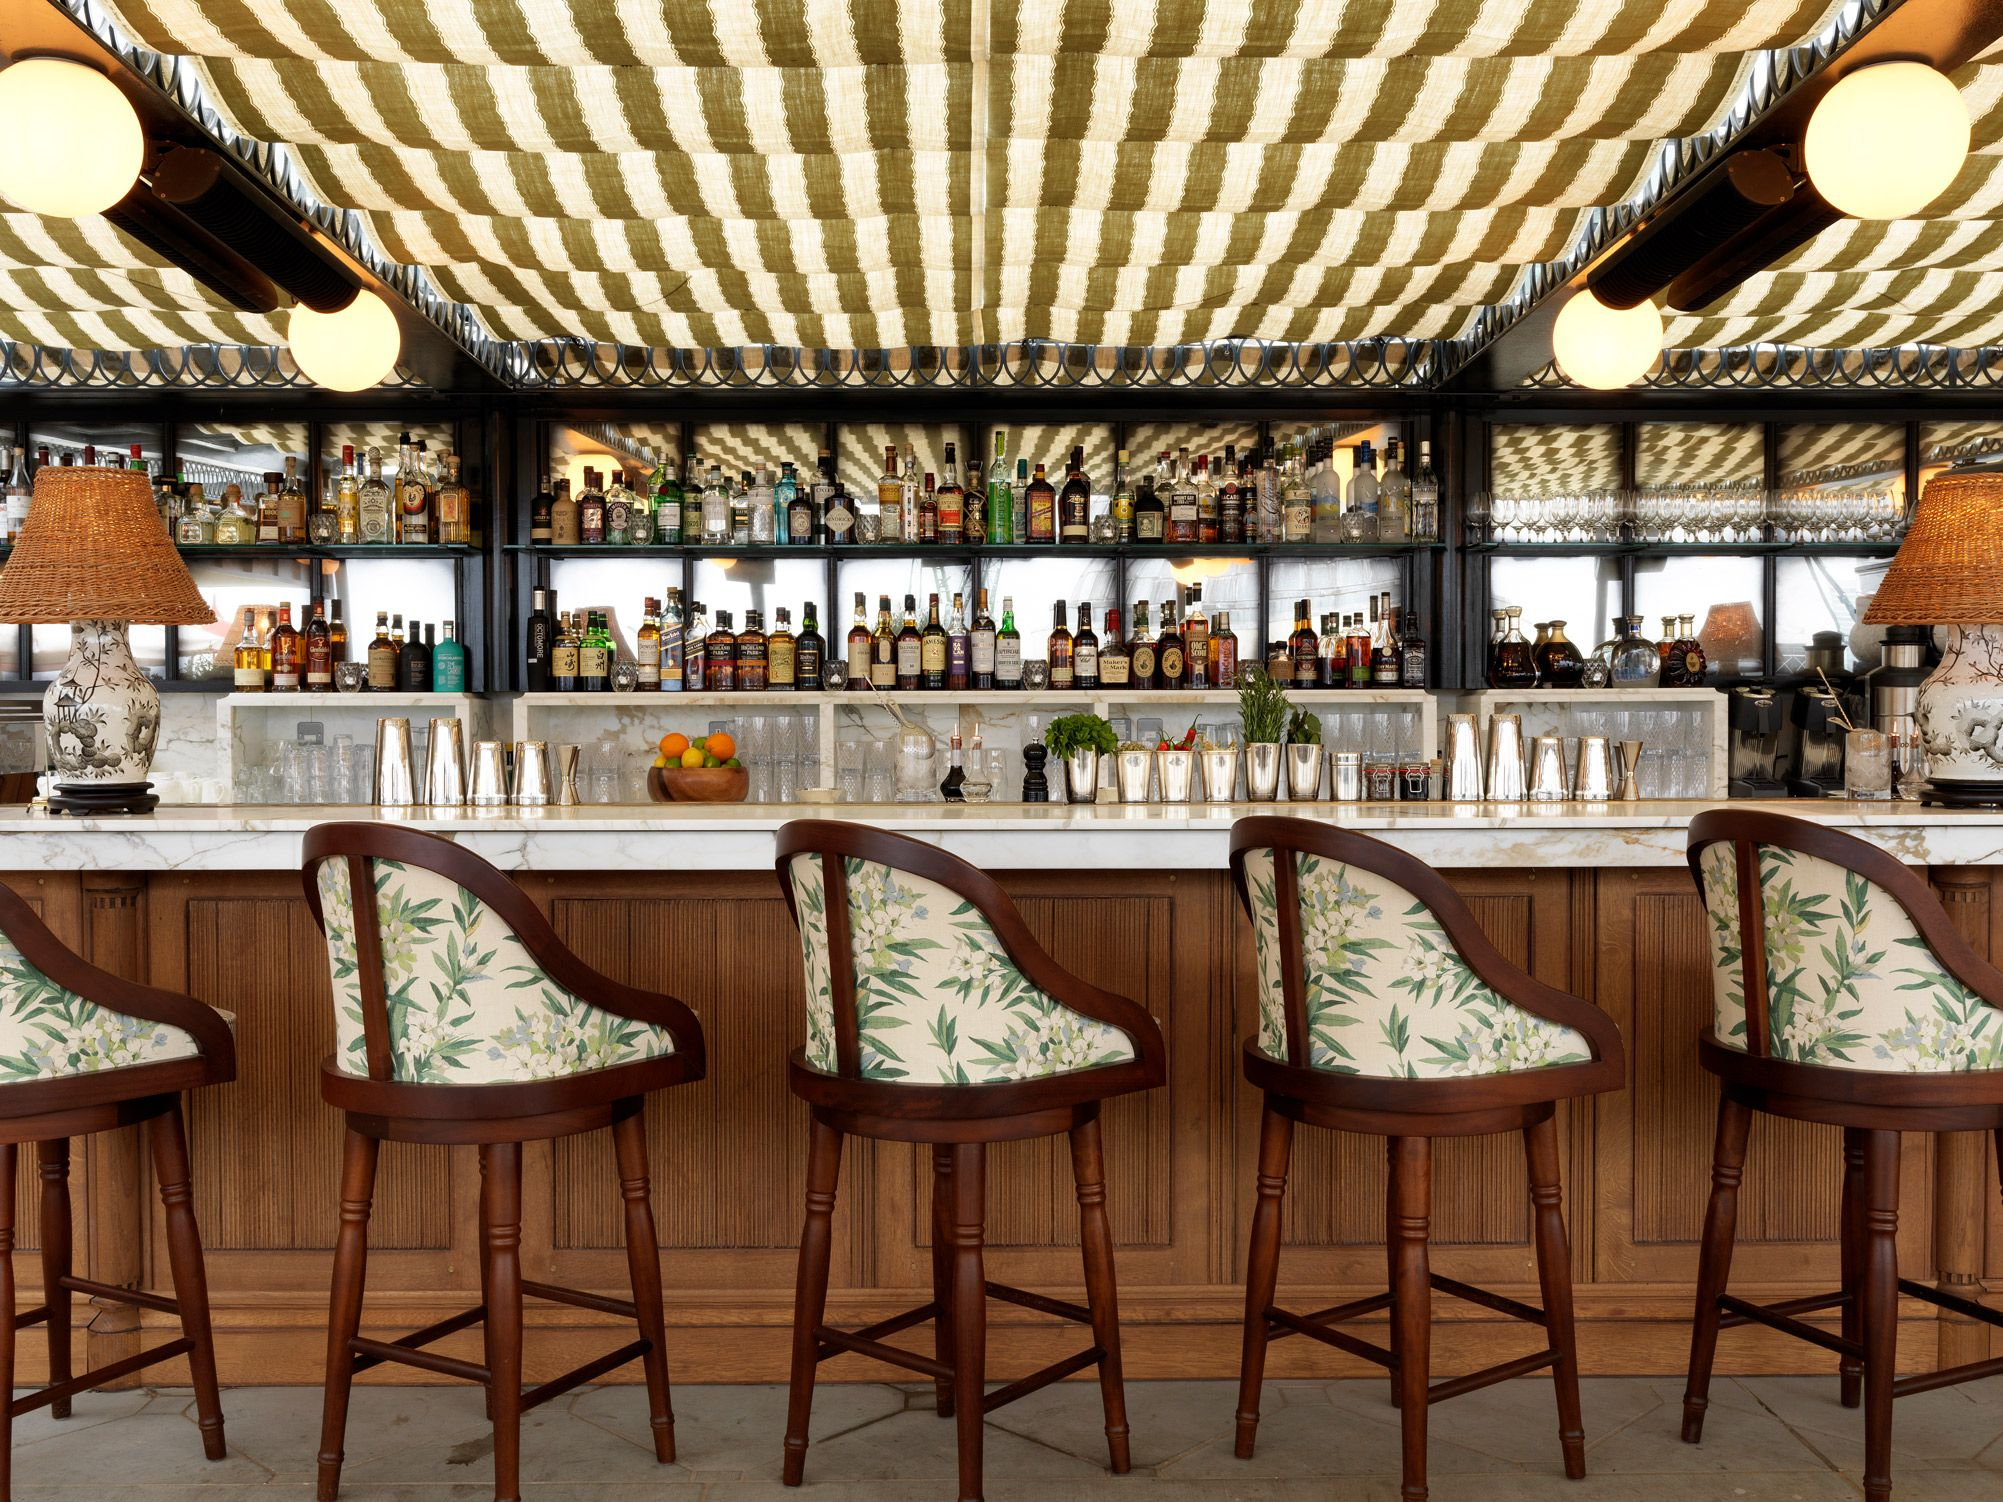 A Panoramic Rooftop Space For Members Ad Hotel Guests With Views To St Pauls Cathedral And Beyond Soho House Brunswick House Warehouse Bar